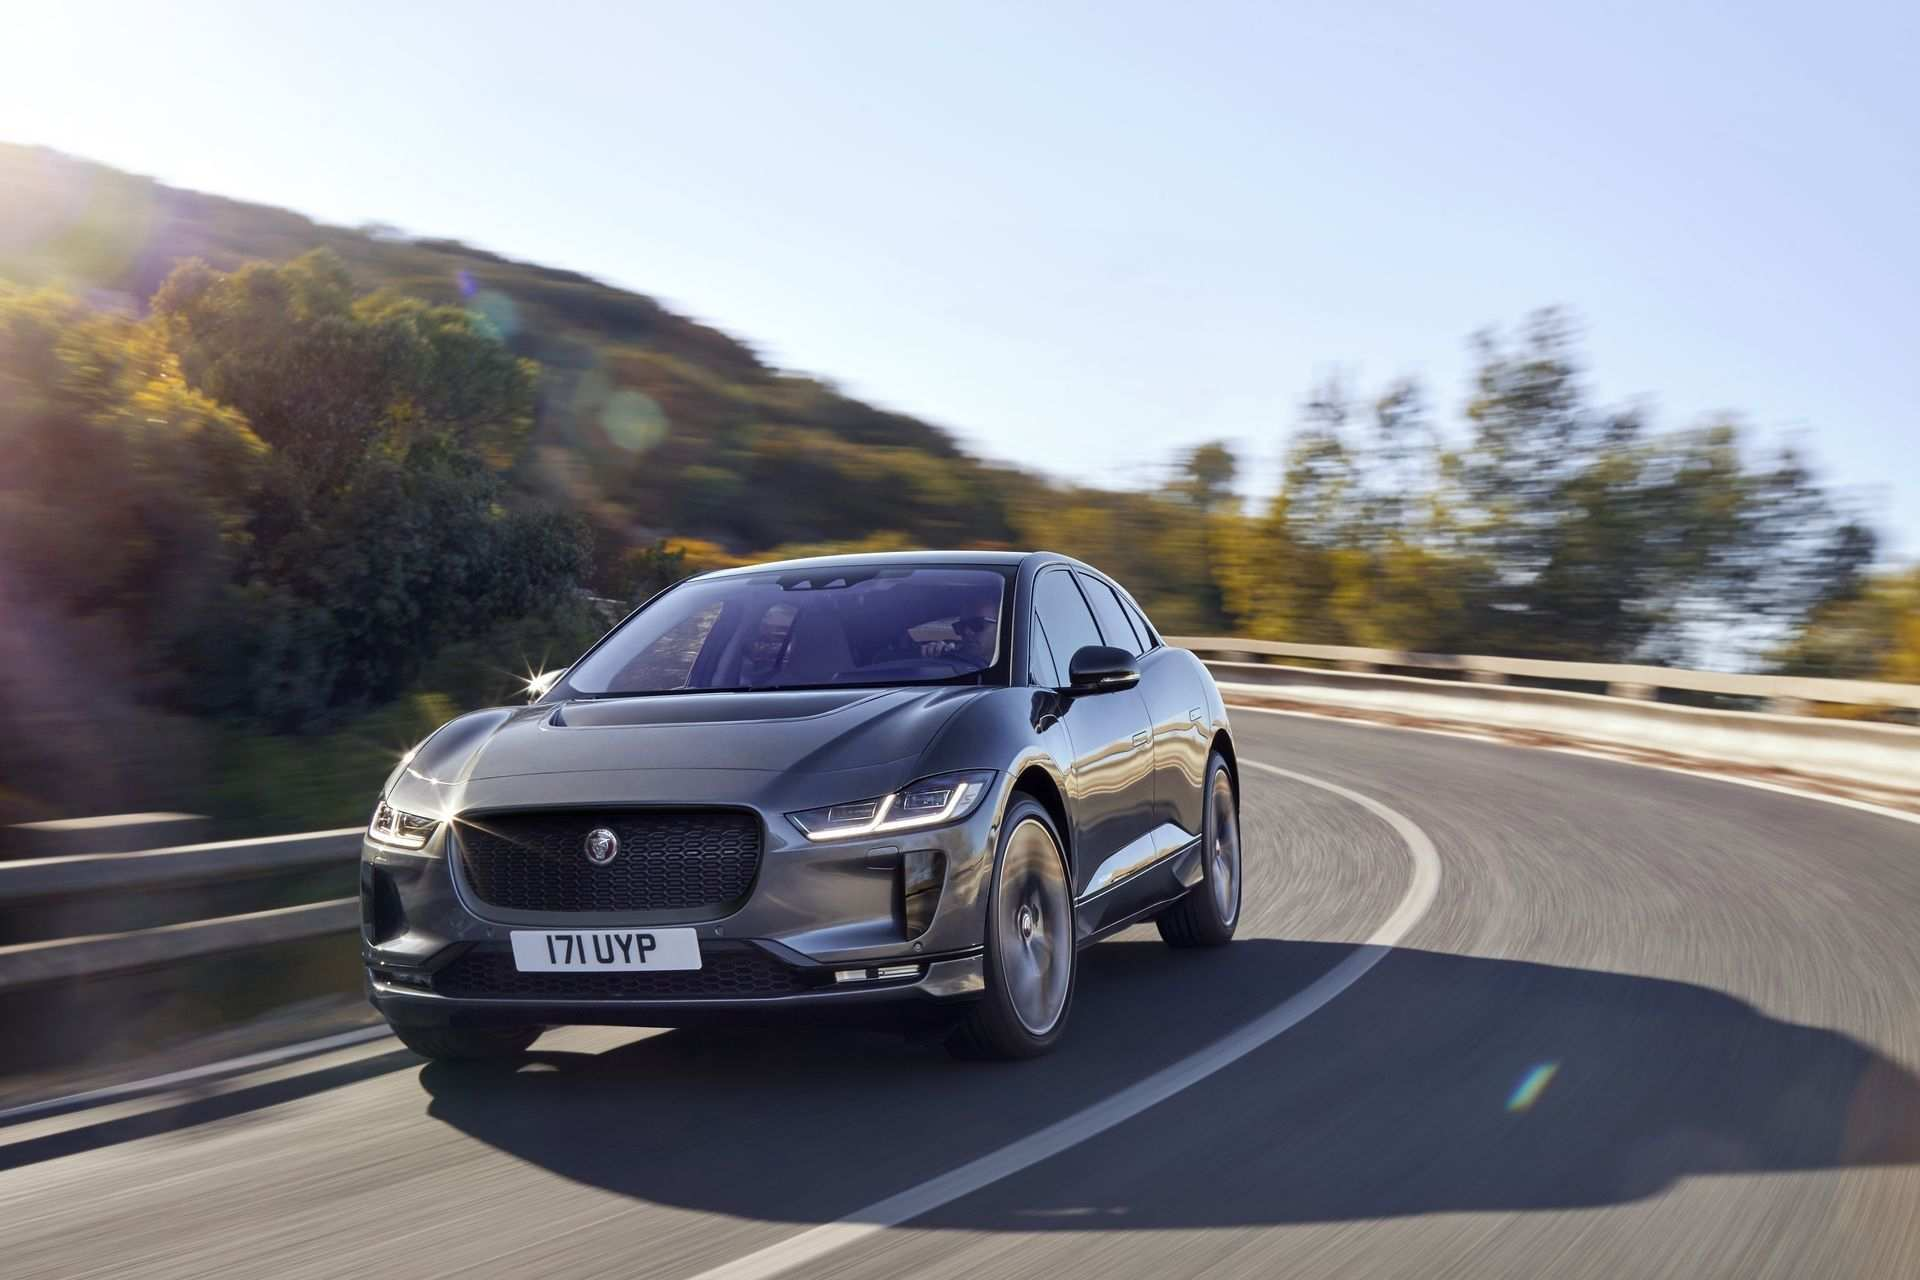 44 Great Jaguar I Pace 2020 Exterior Research New by Jaguar I Pace 2020 Exterior